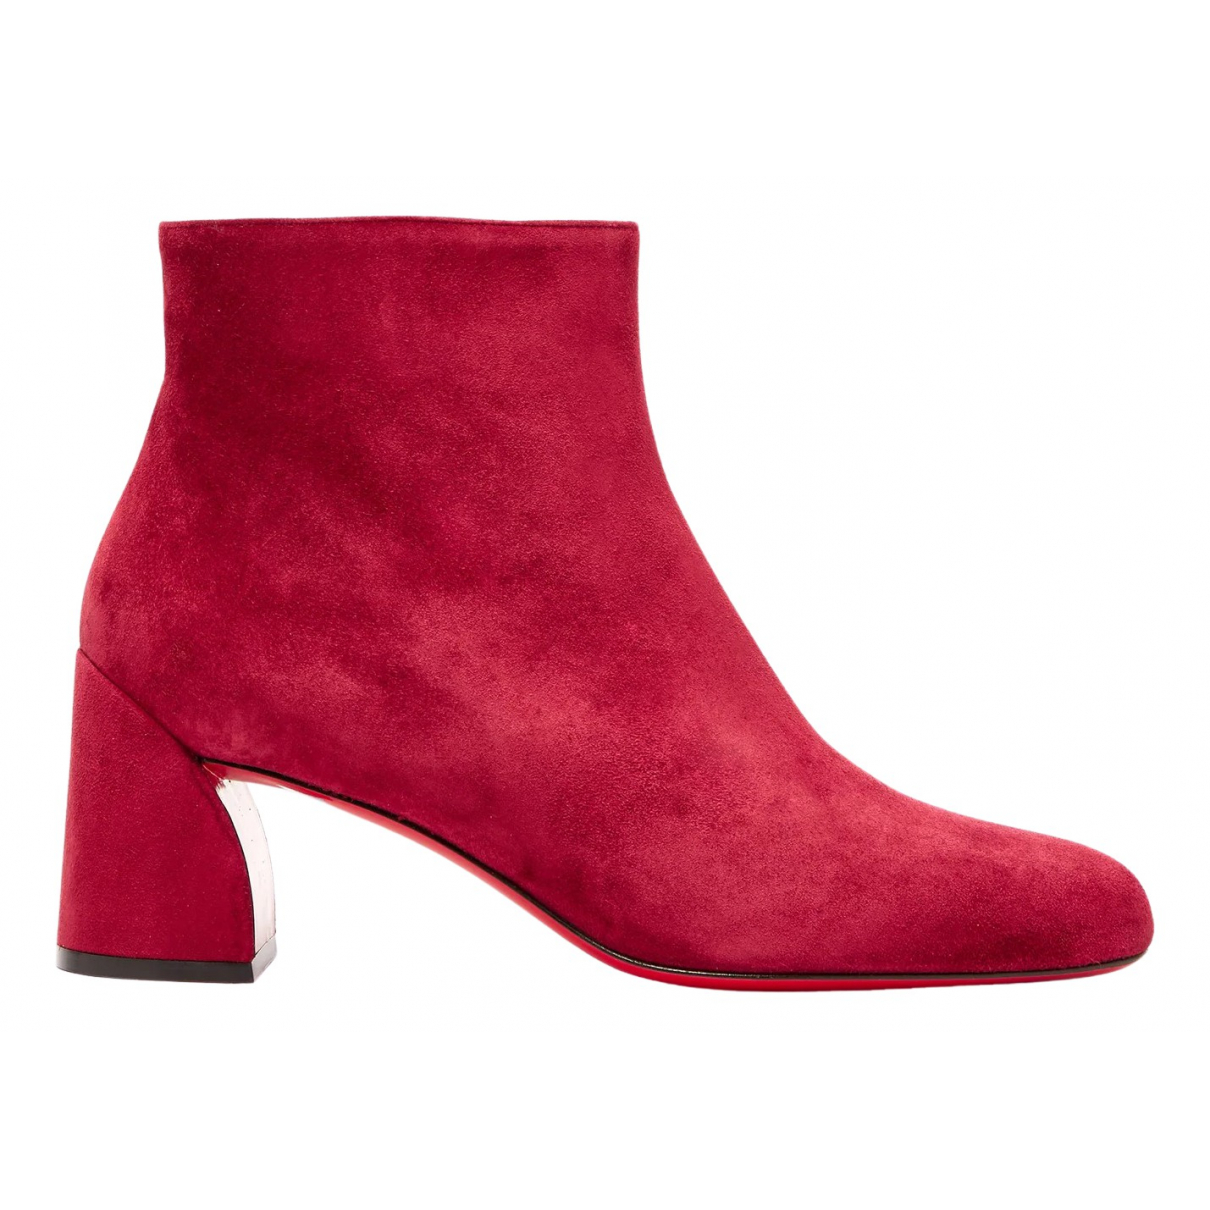 Christian Louboutin \N Red Suede Ankle boots for Women 35.5 EU